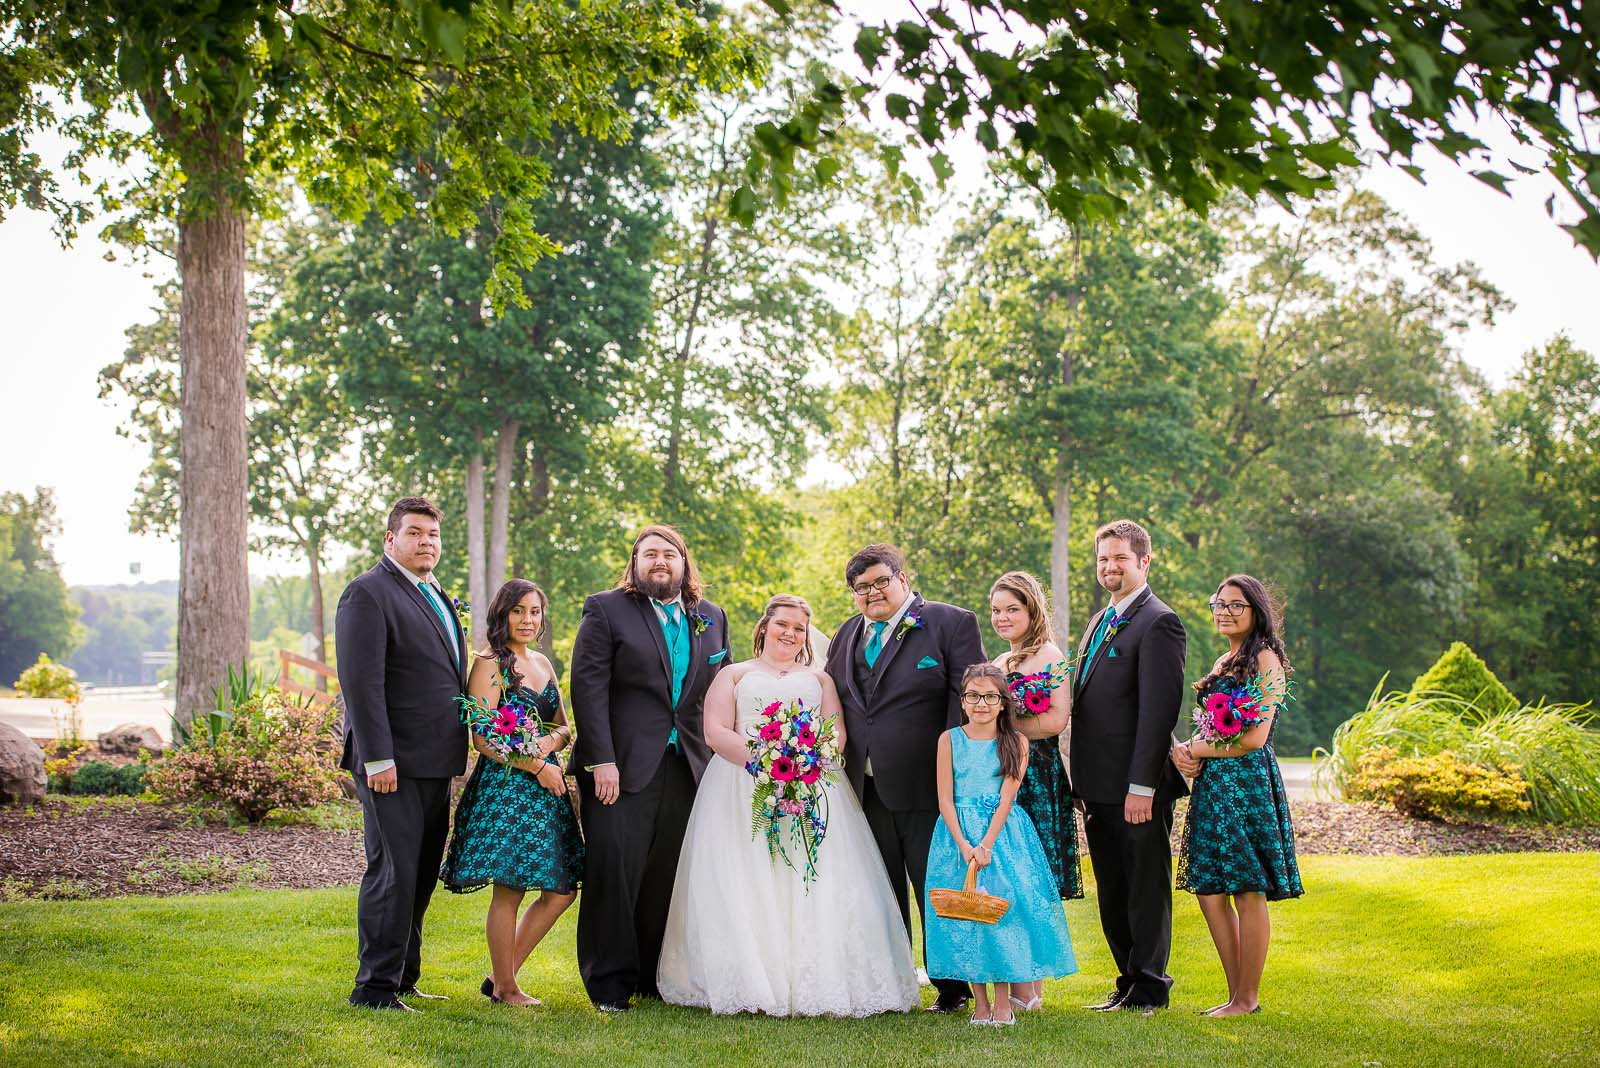 Eric_and_Christy_Photography_Blog_Shelby_Dony_Wedding-15